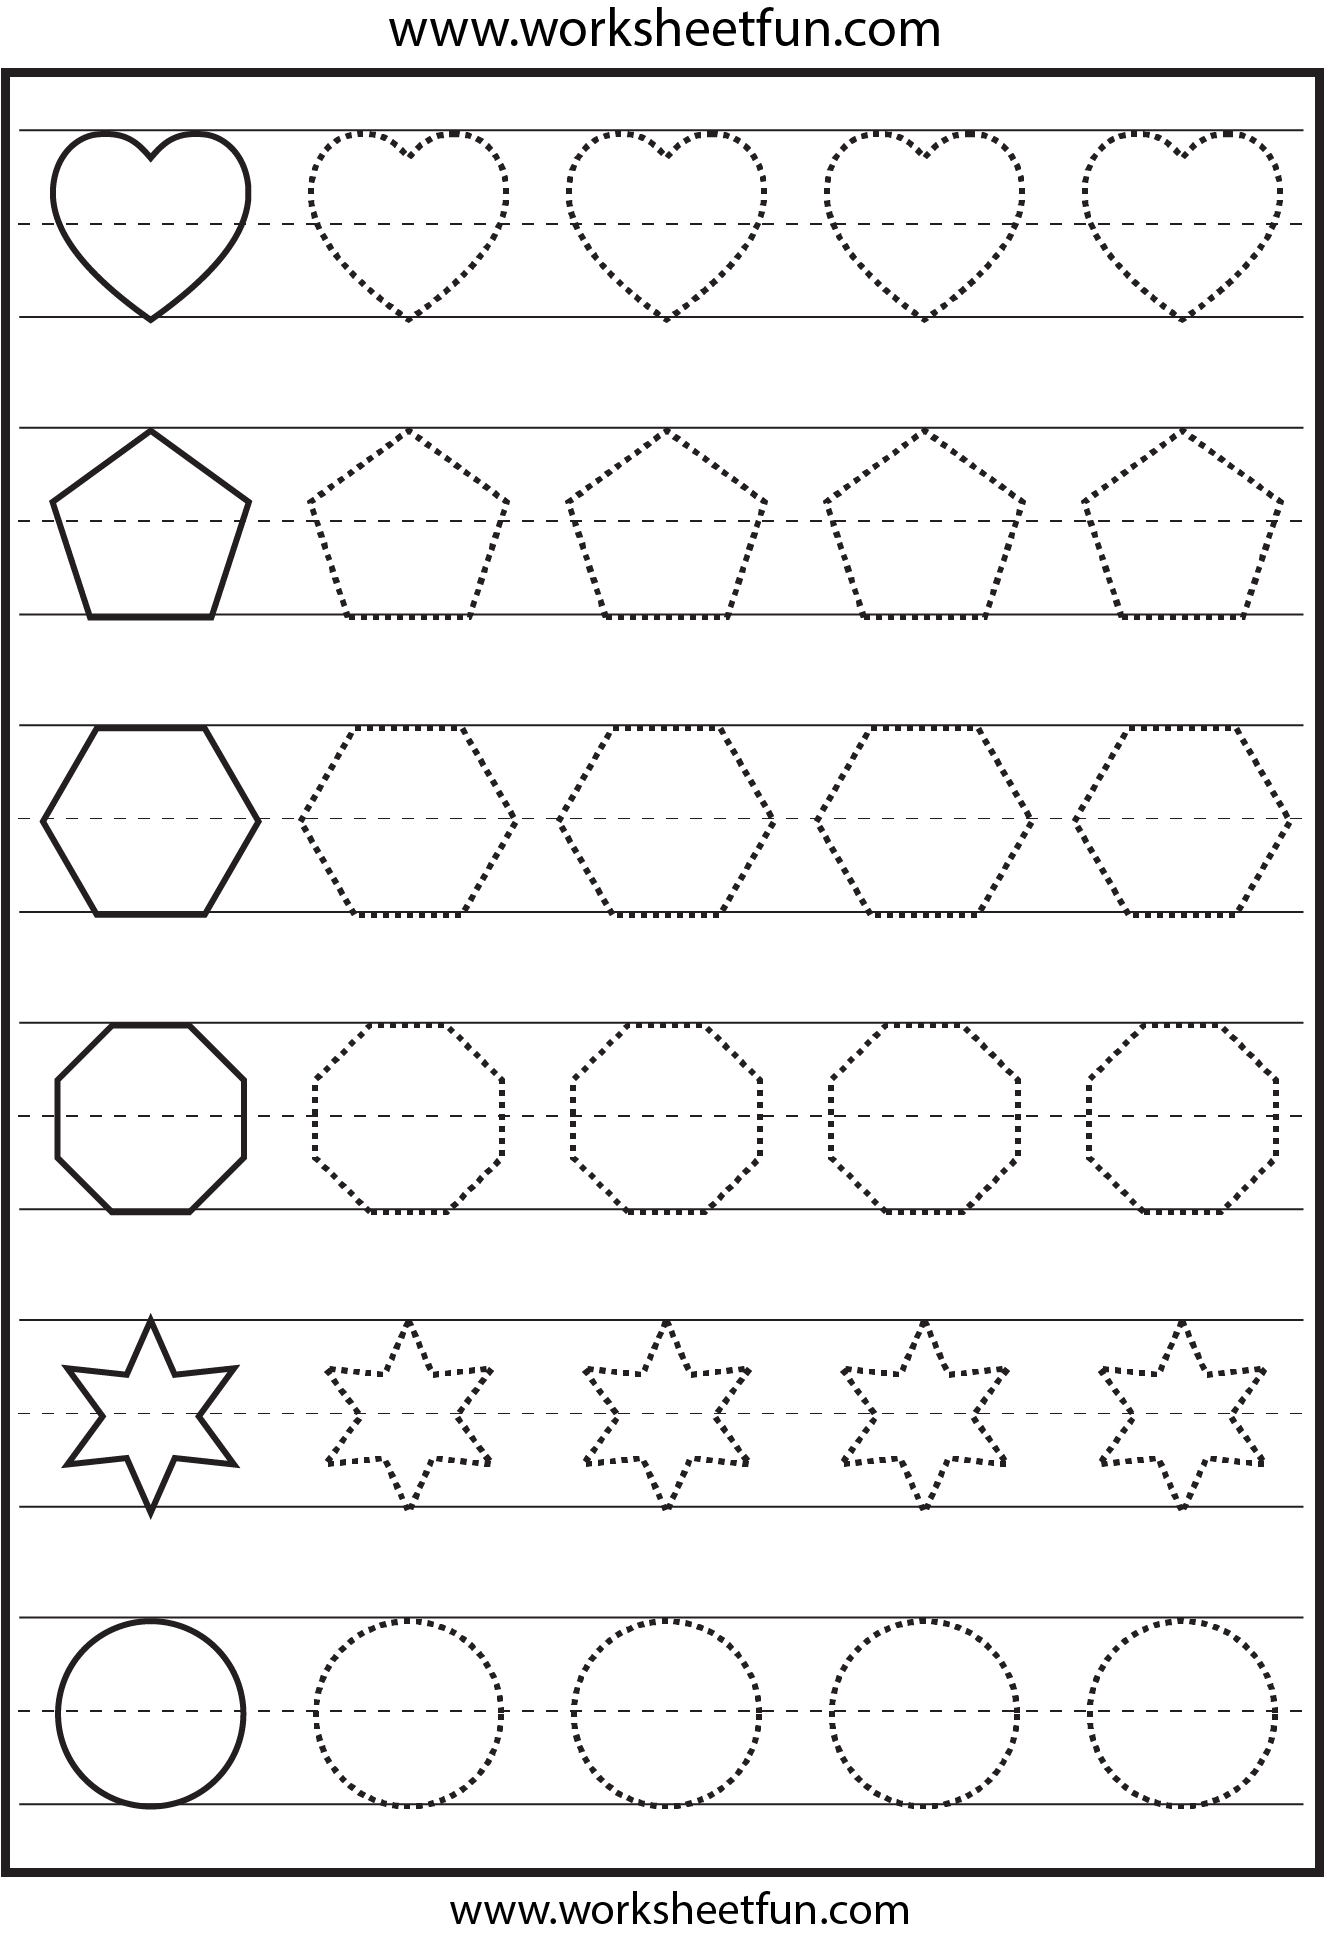 tracing worksheets caterpillar tracing worksheet freebie website has a great the bontte worksheet